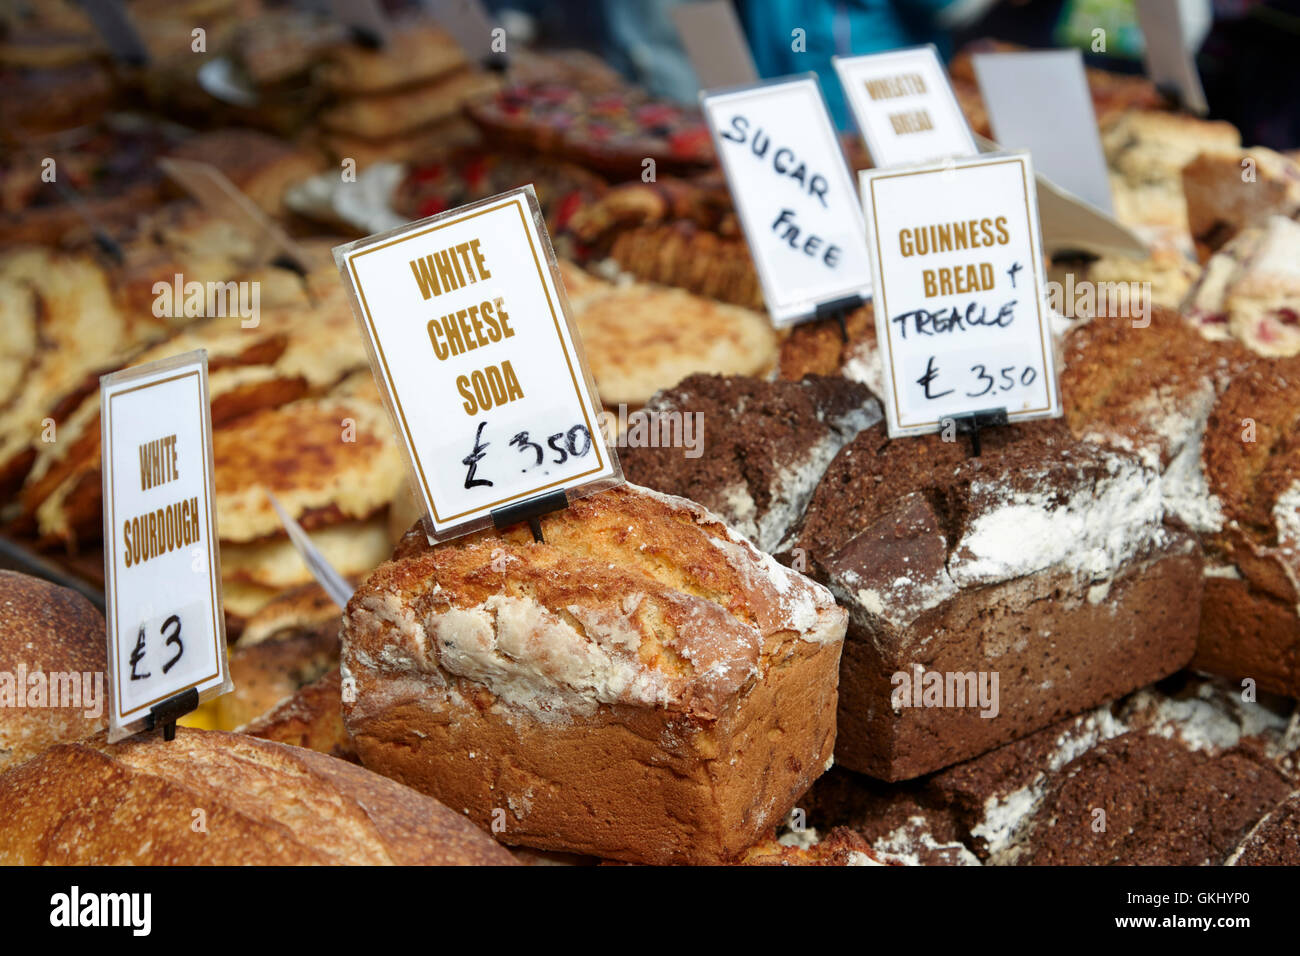 handmade irish artisan breads on a stall at a food market in northern ireland - Stock Image